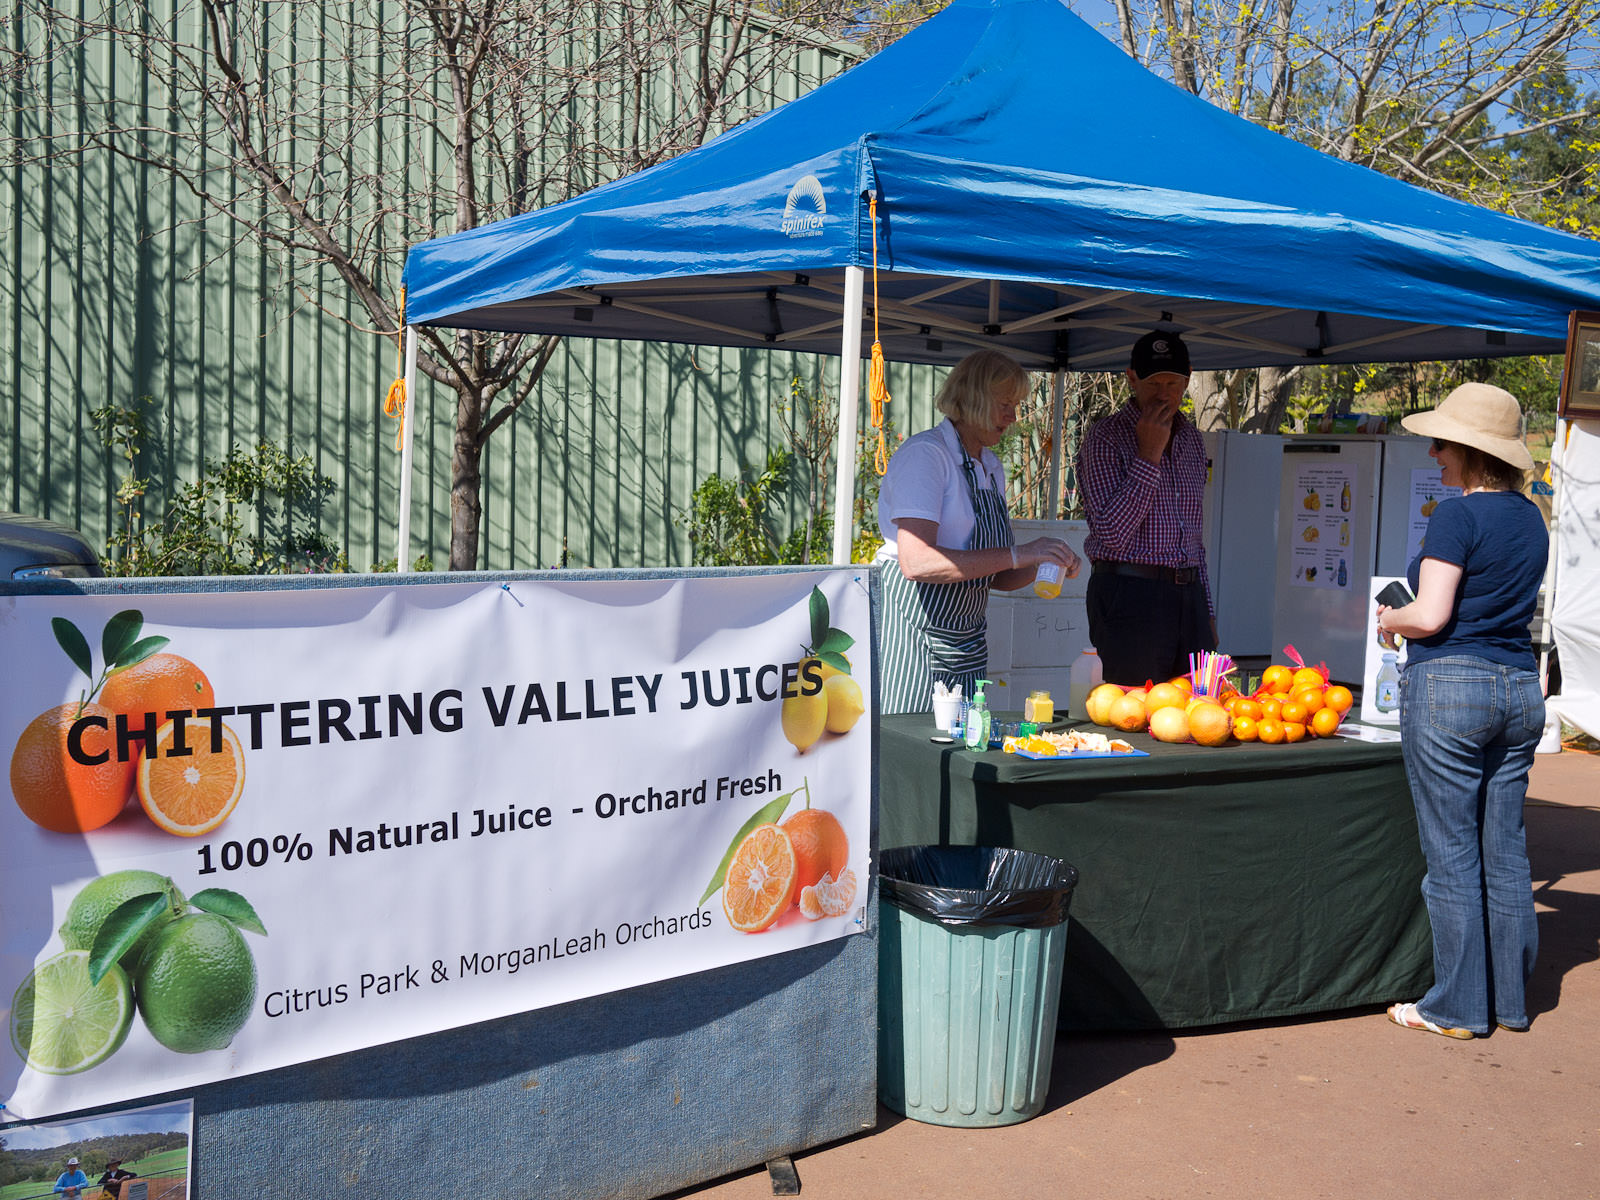 Chittering Valley Juices